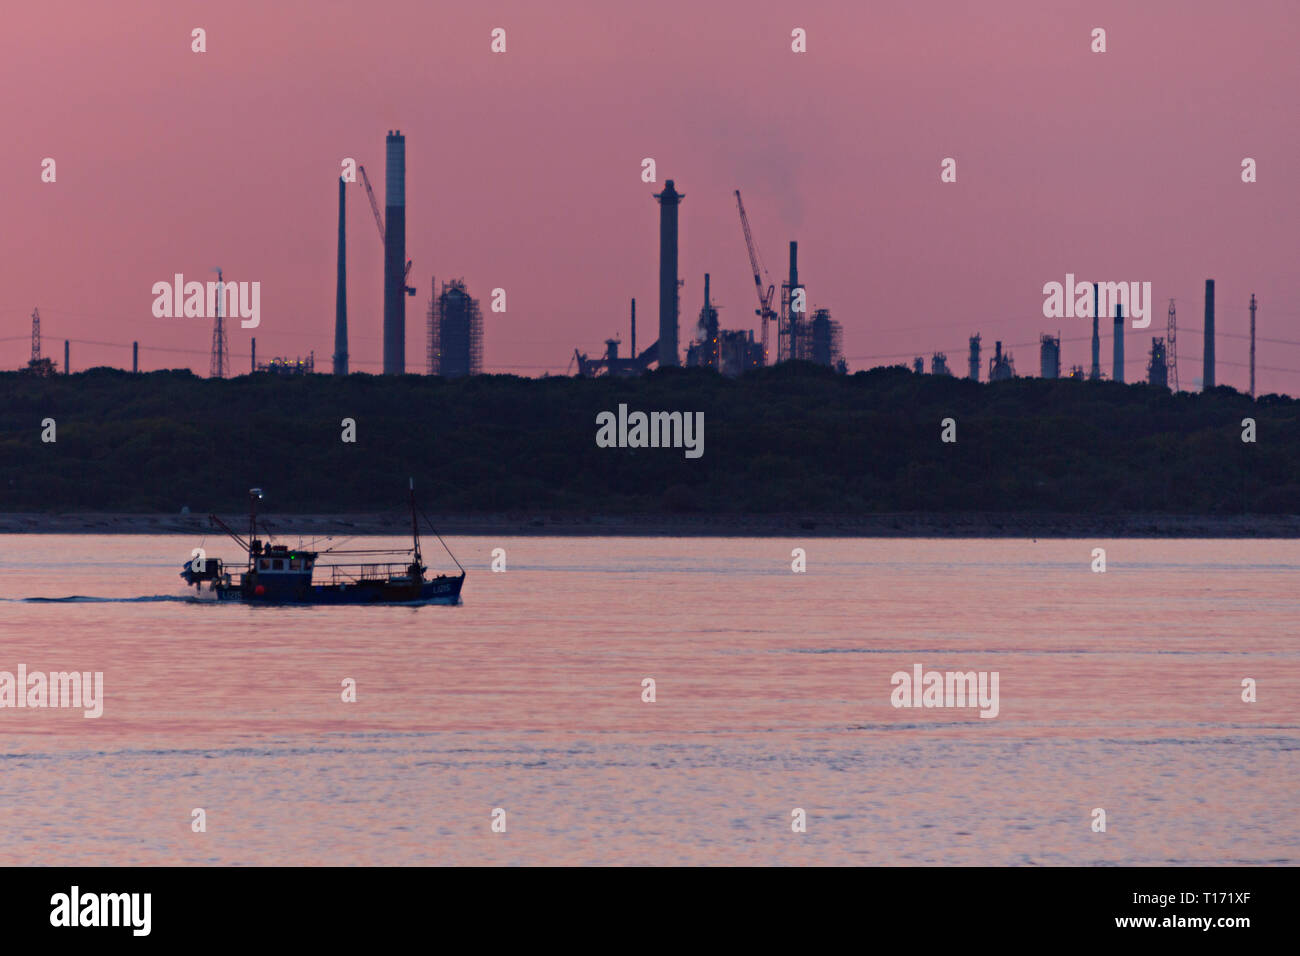 Fawley,Oil,Refinery,pollution,Fishing,boat,lobsters,crabs,oysters,pots,long,line,trawler,sunset,sunrise,The Solent,Cowes,Isle of Wight,England,UK, - Stock Image